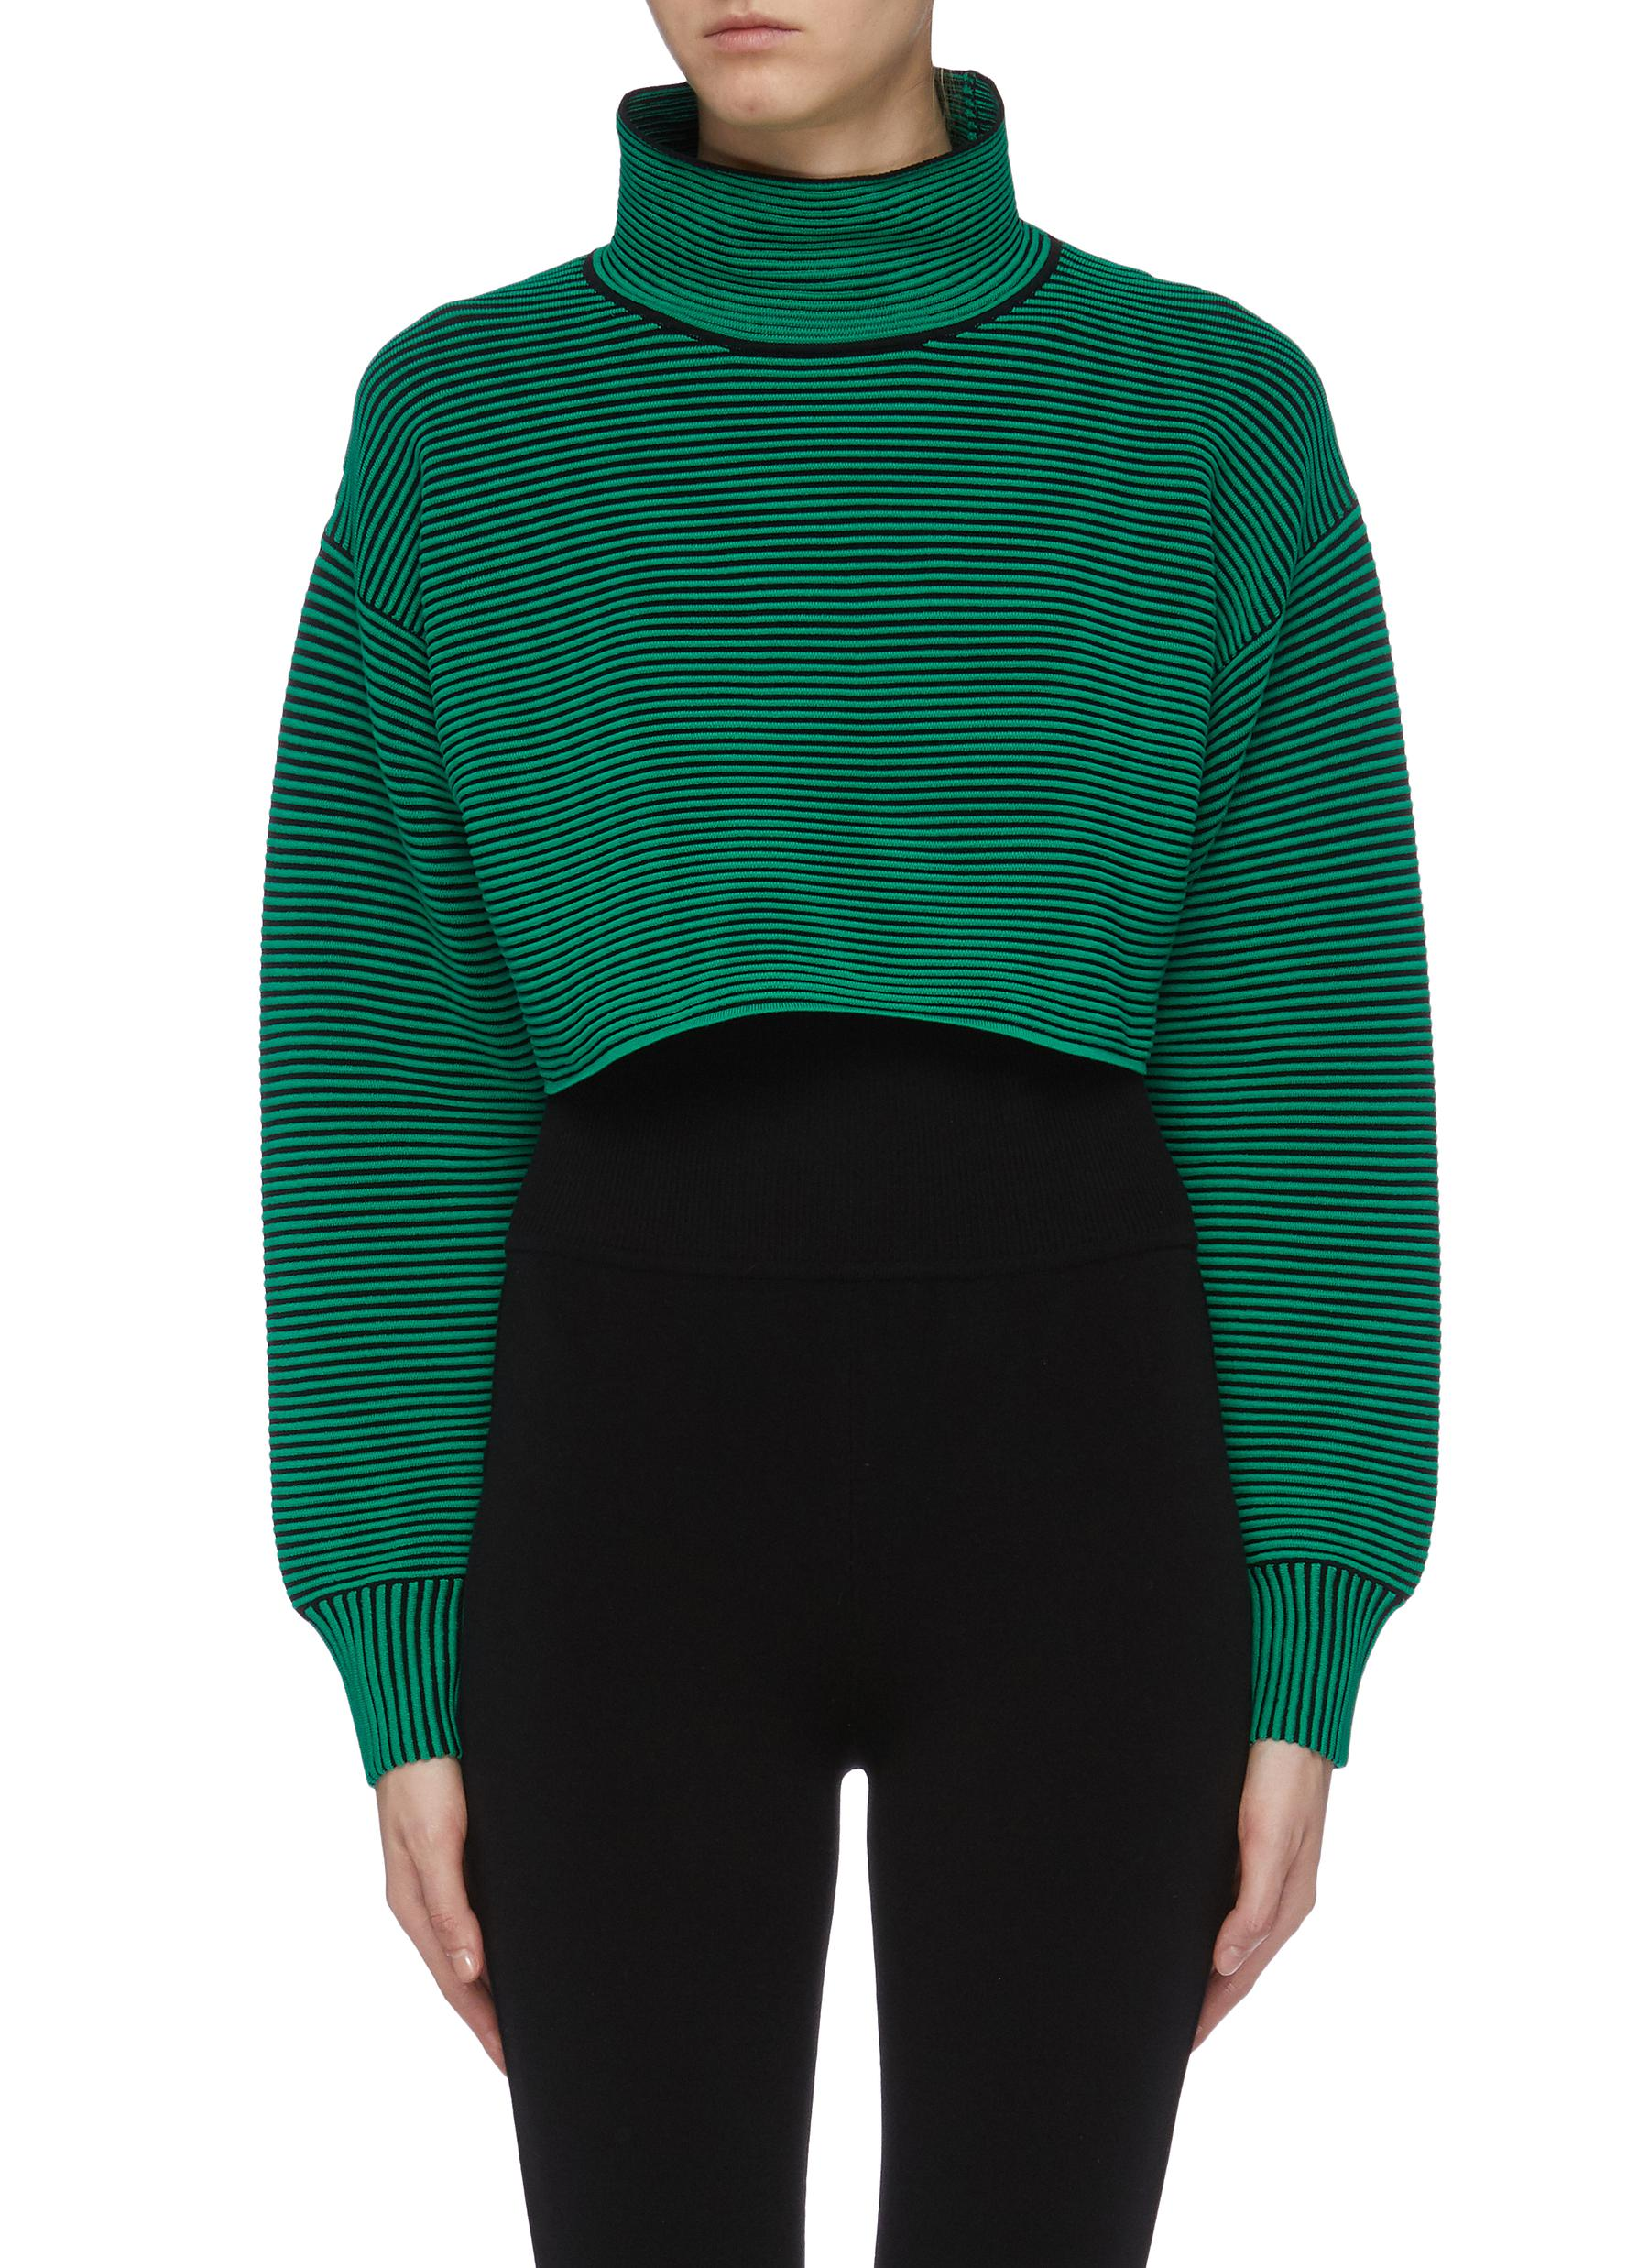 Organic cotton rib knit cropped high neck sweater by Nagnata